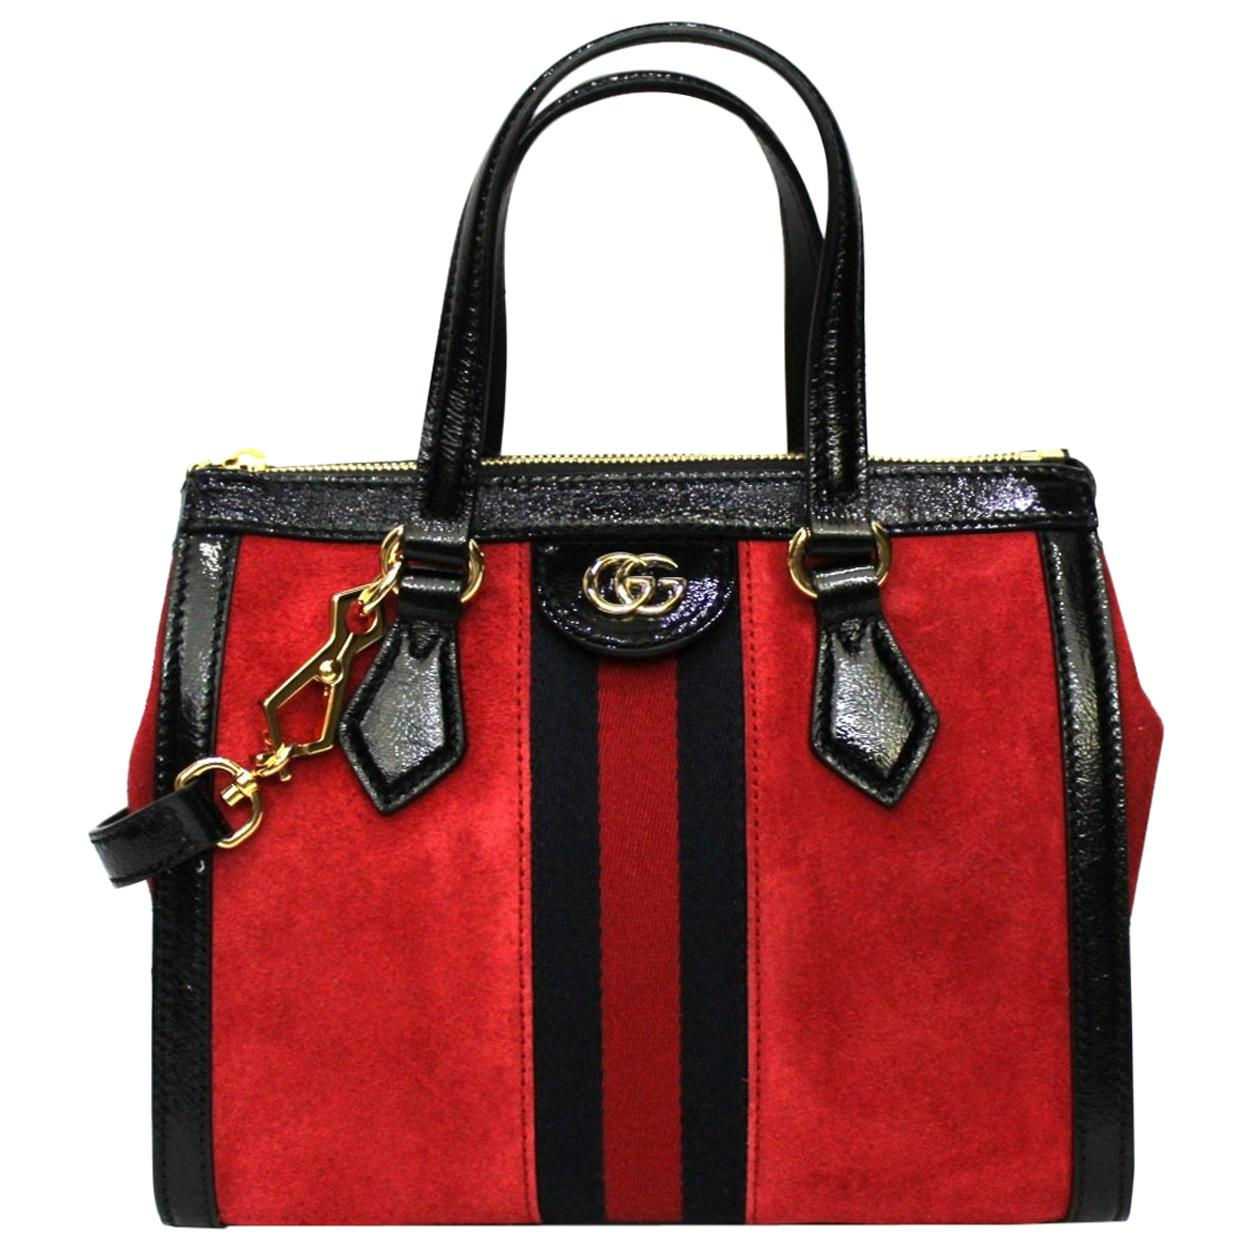 Gucci Red Suede Bag